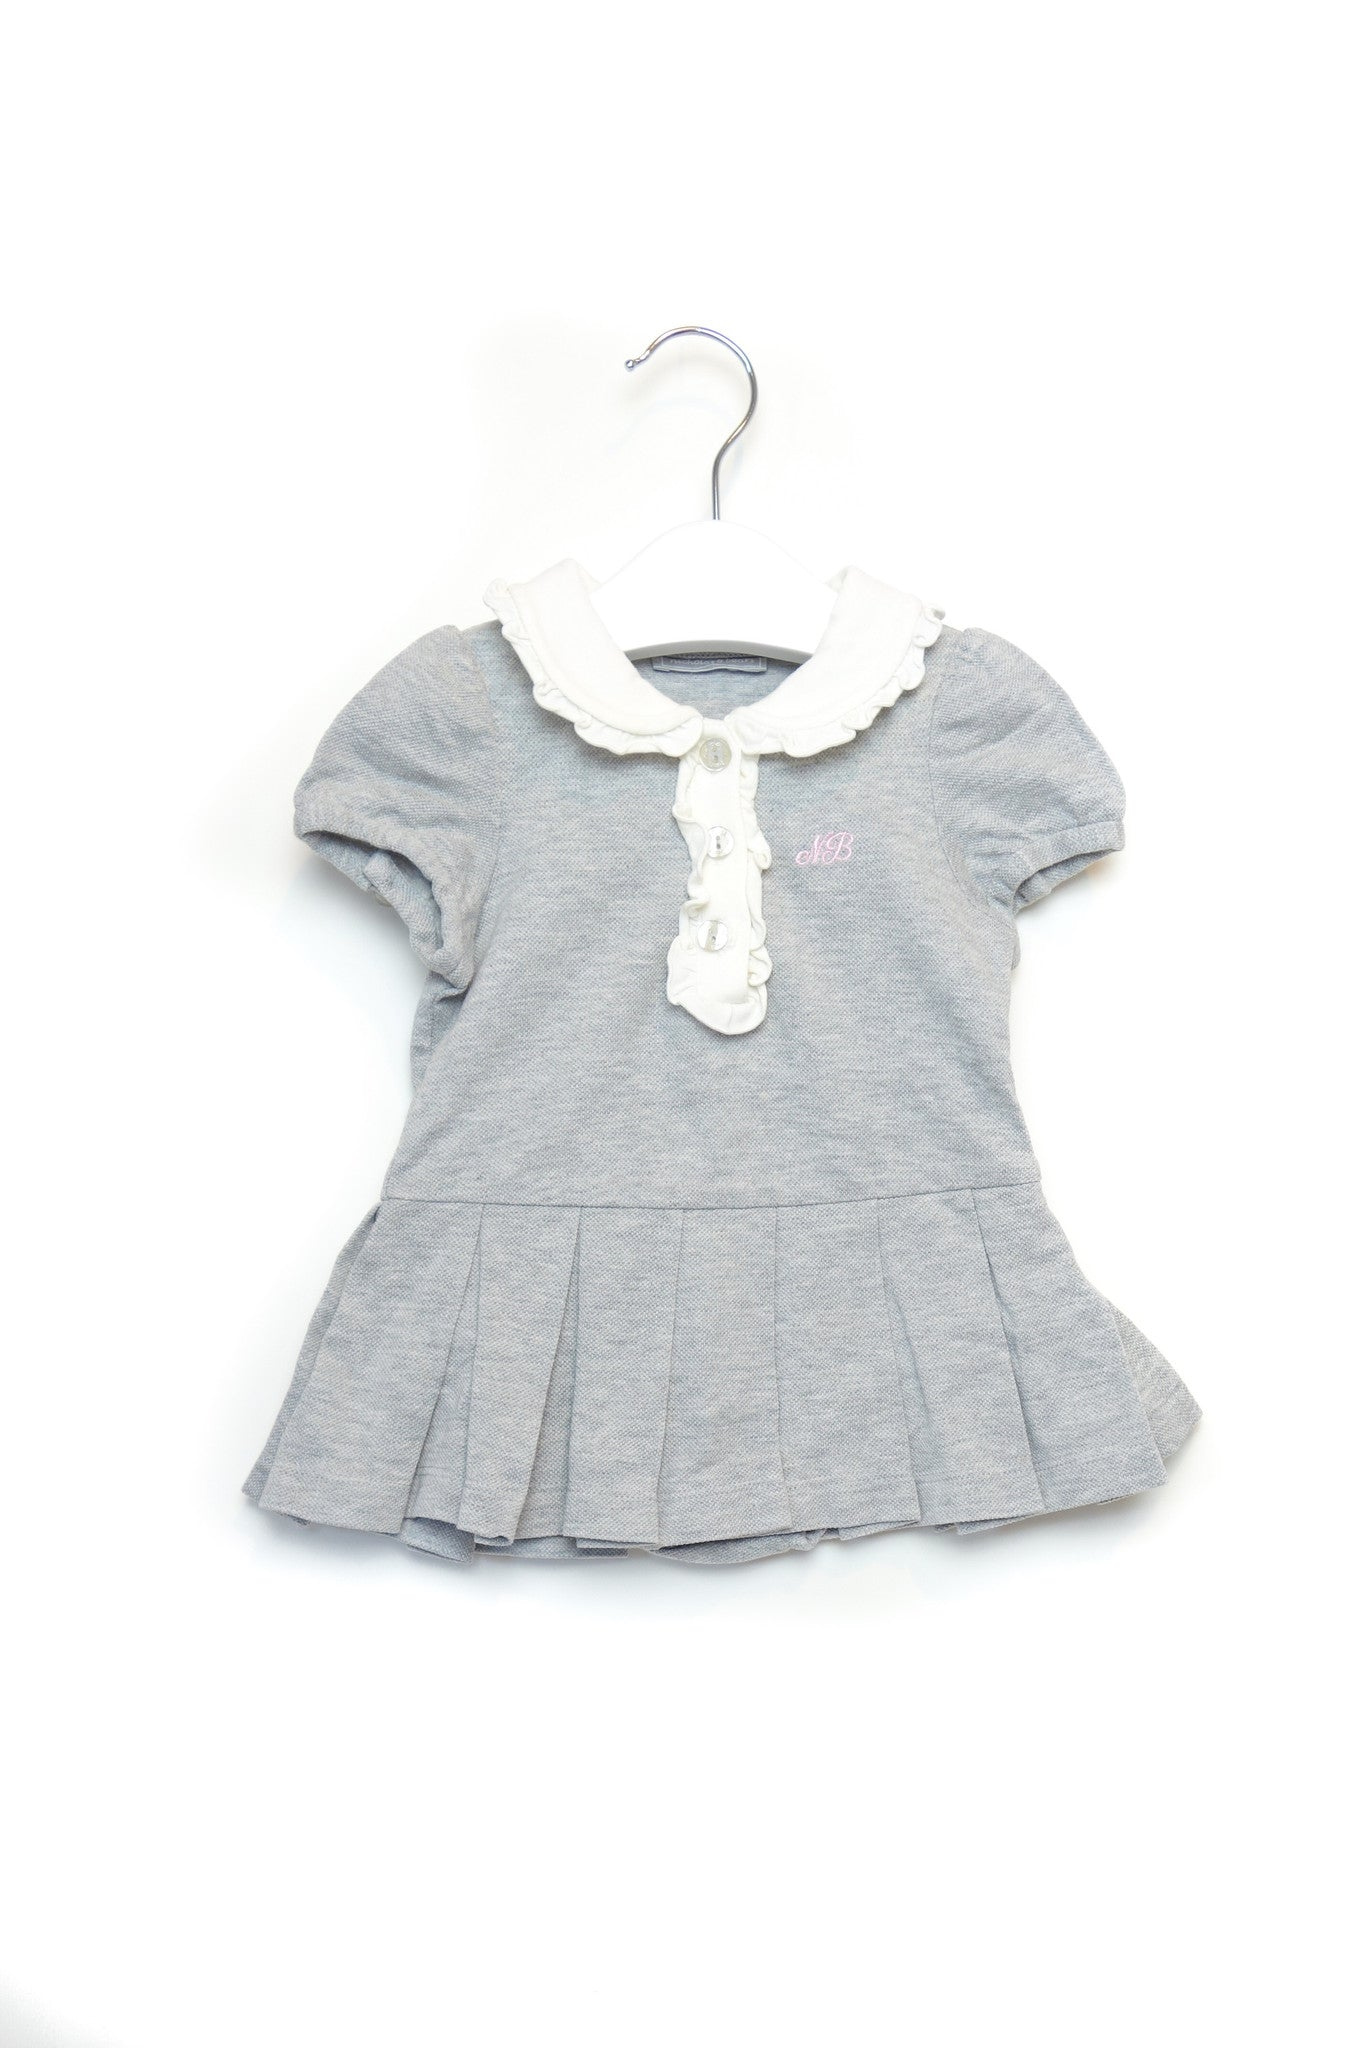 10001463 Nicholas & Bears Baby~Dress 12M at Retykle